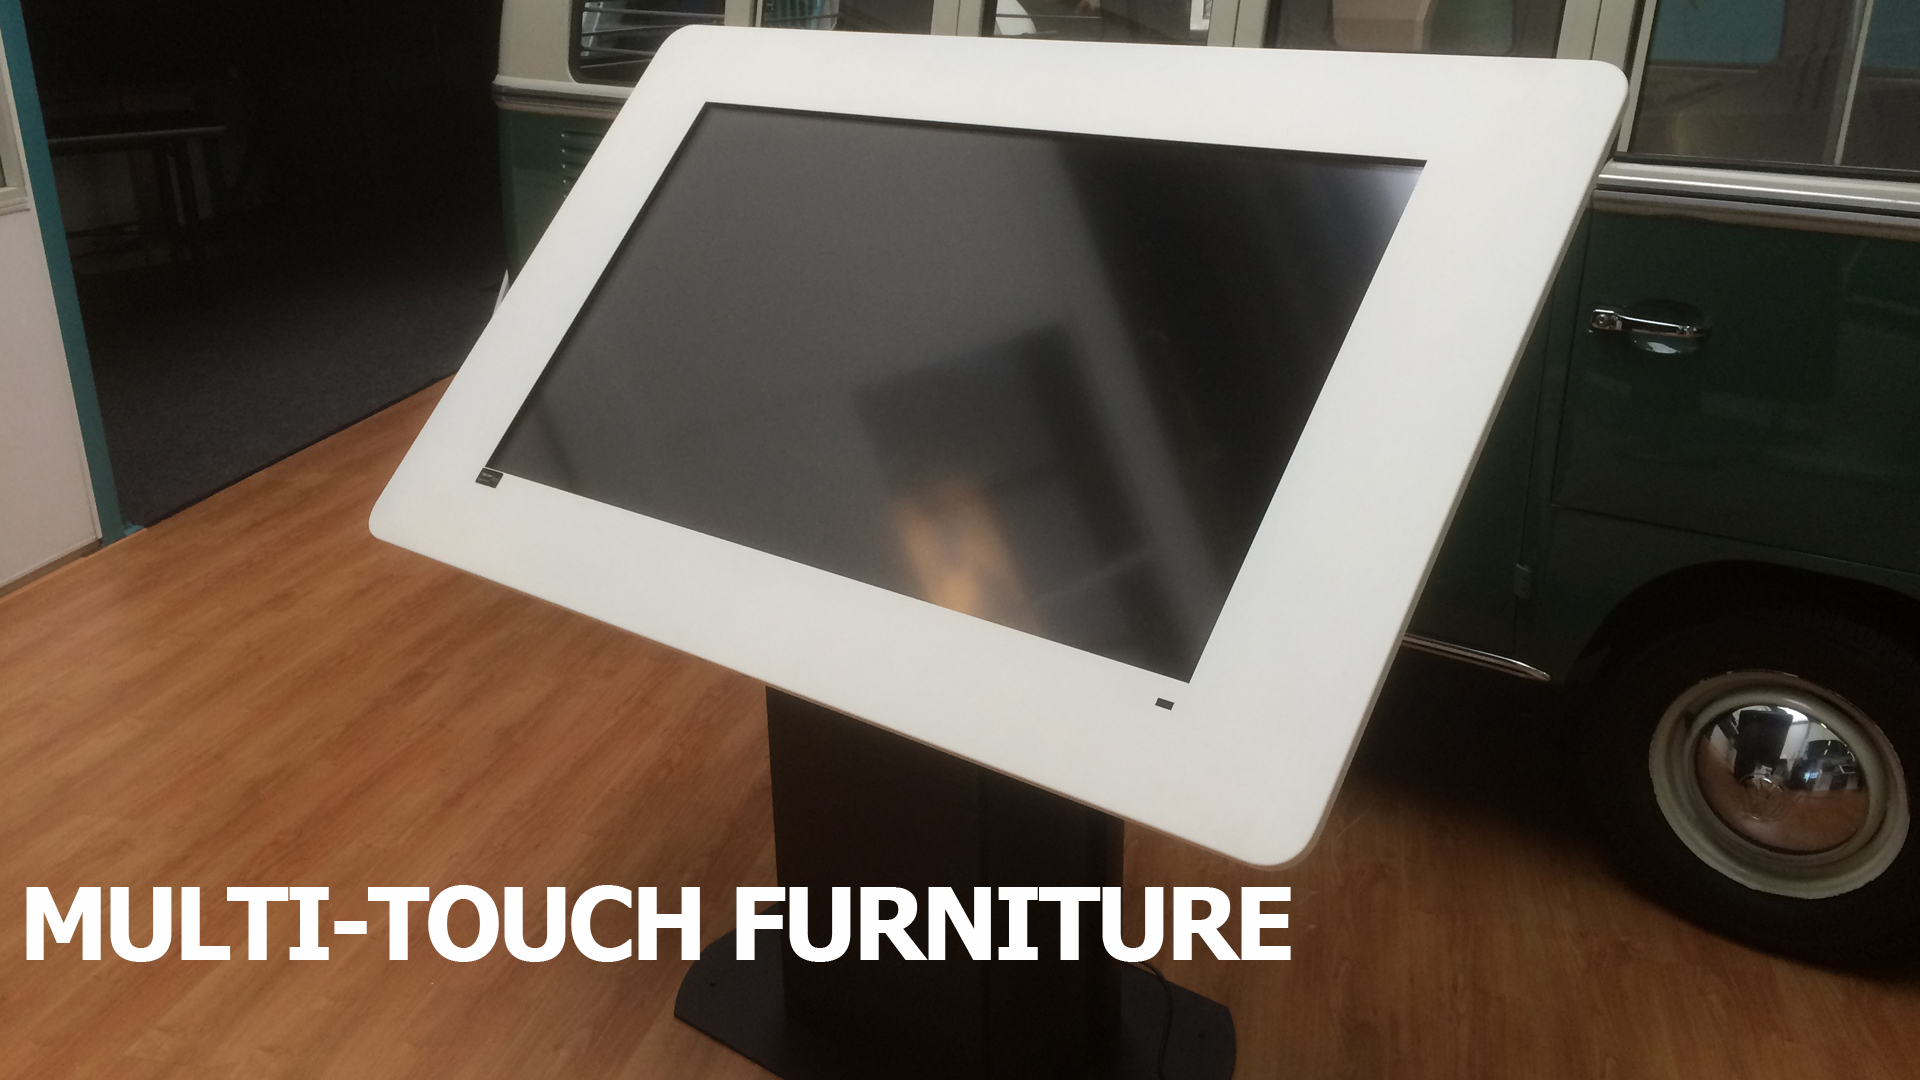 multitouch furnture